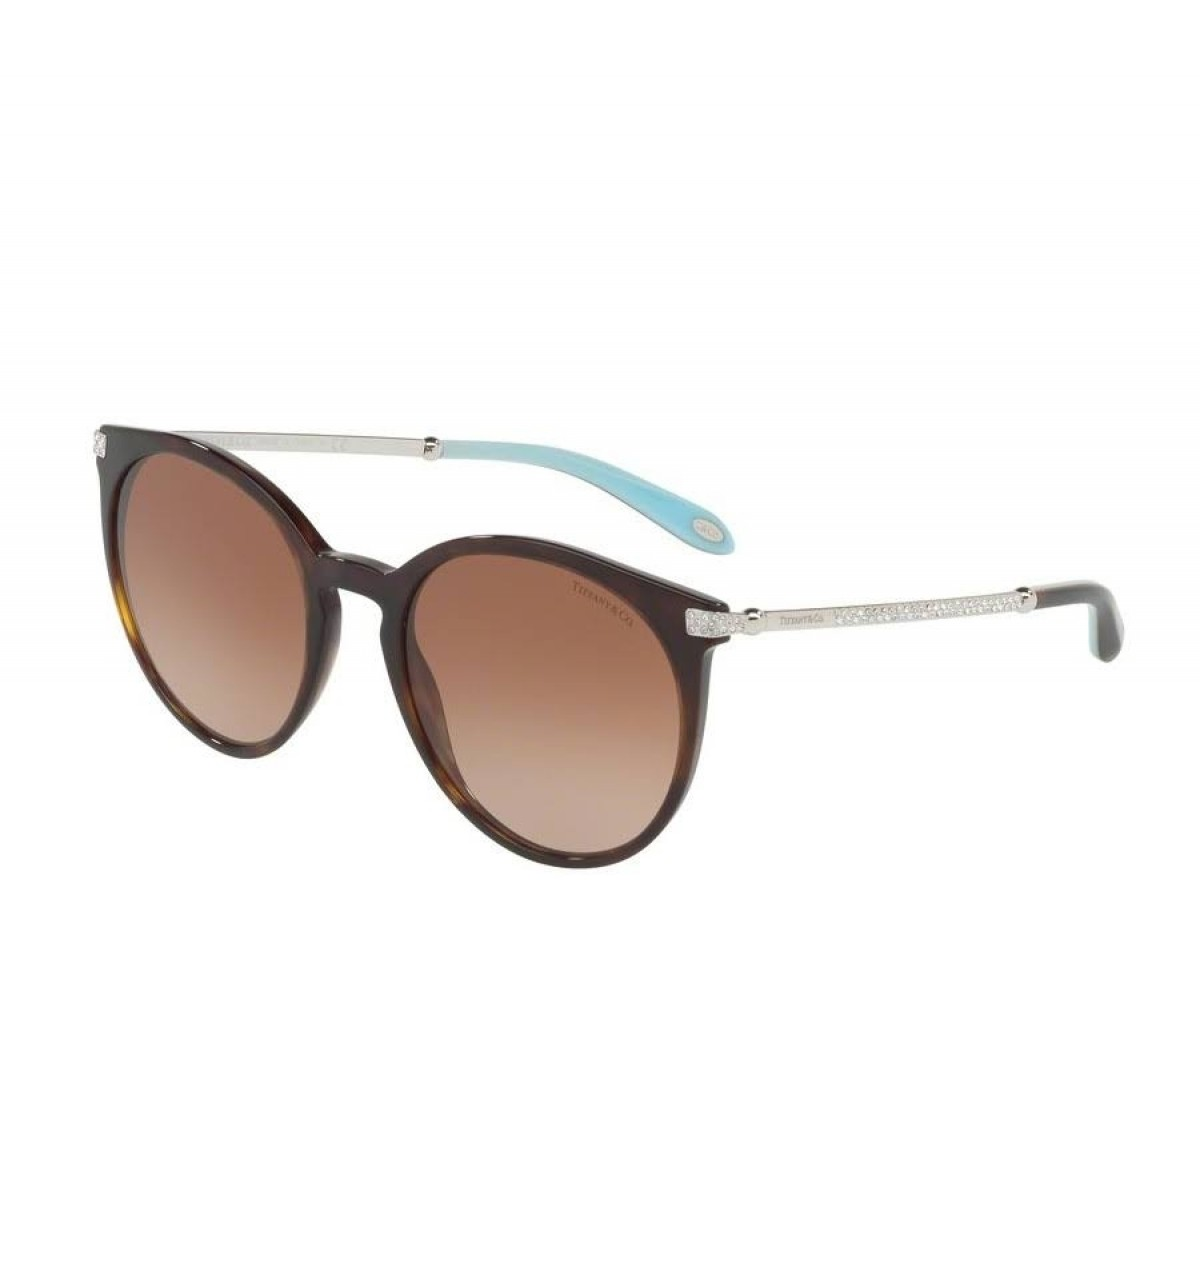 Tiffany 4142 80153B 54, 221,98 €, Occhiali Tiffany & Co. Marrone a forma Rotondo